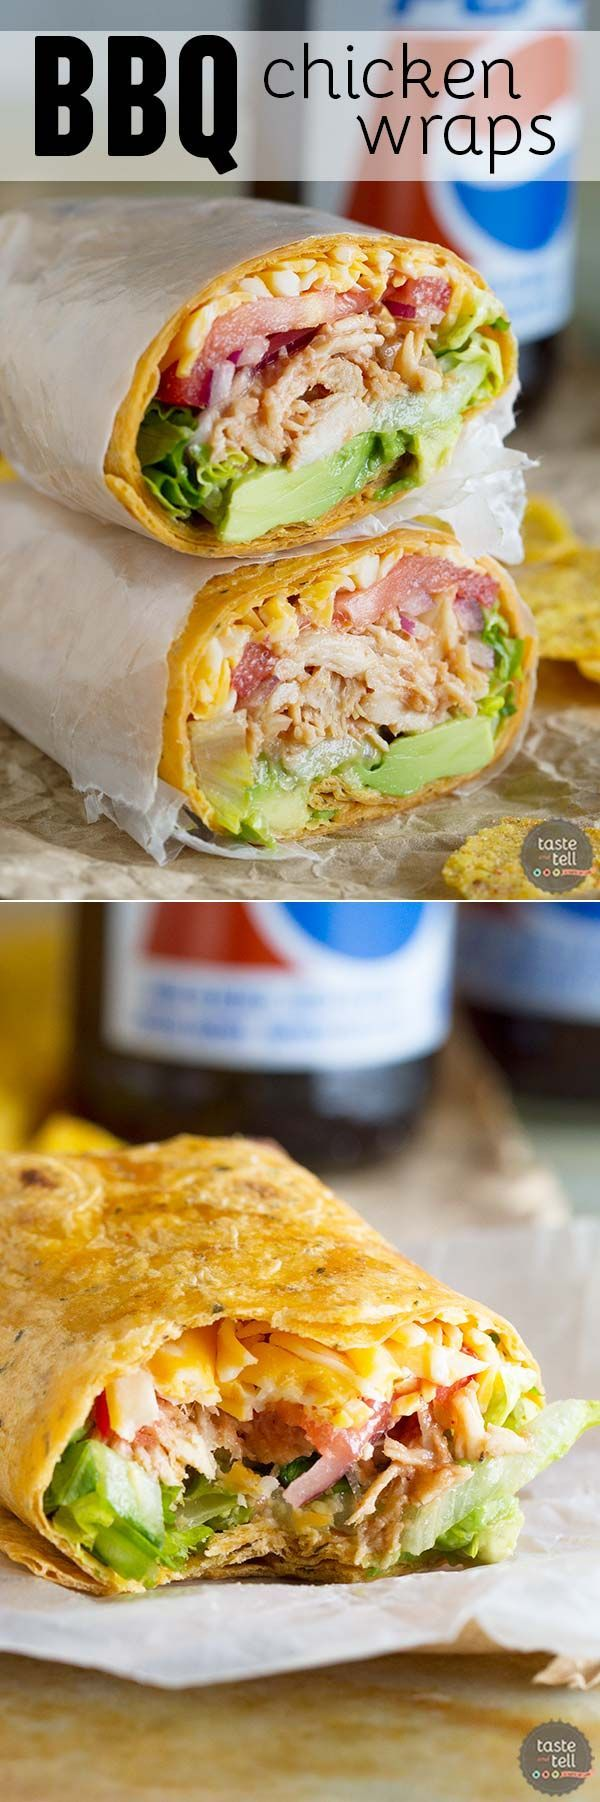 Looking for an uncomplicated lunch idea? These BBQ Chicken Wraps can be ready to go in 10 minutes if you keep shredded chicken on hand!: